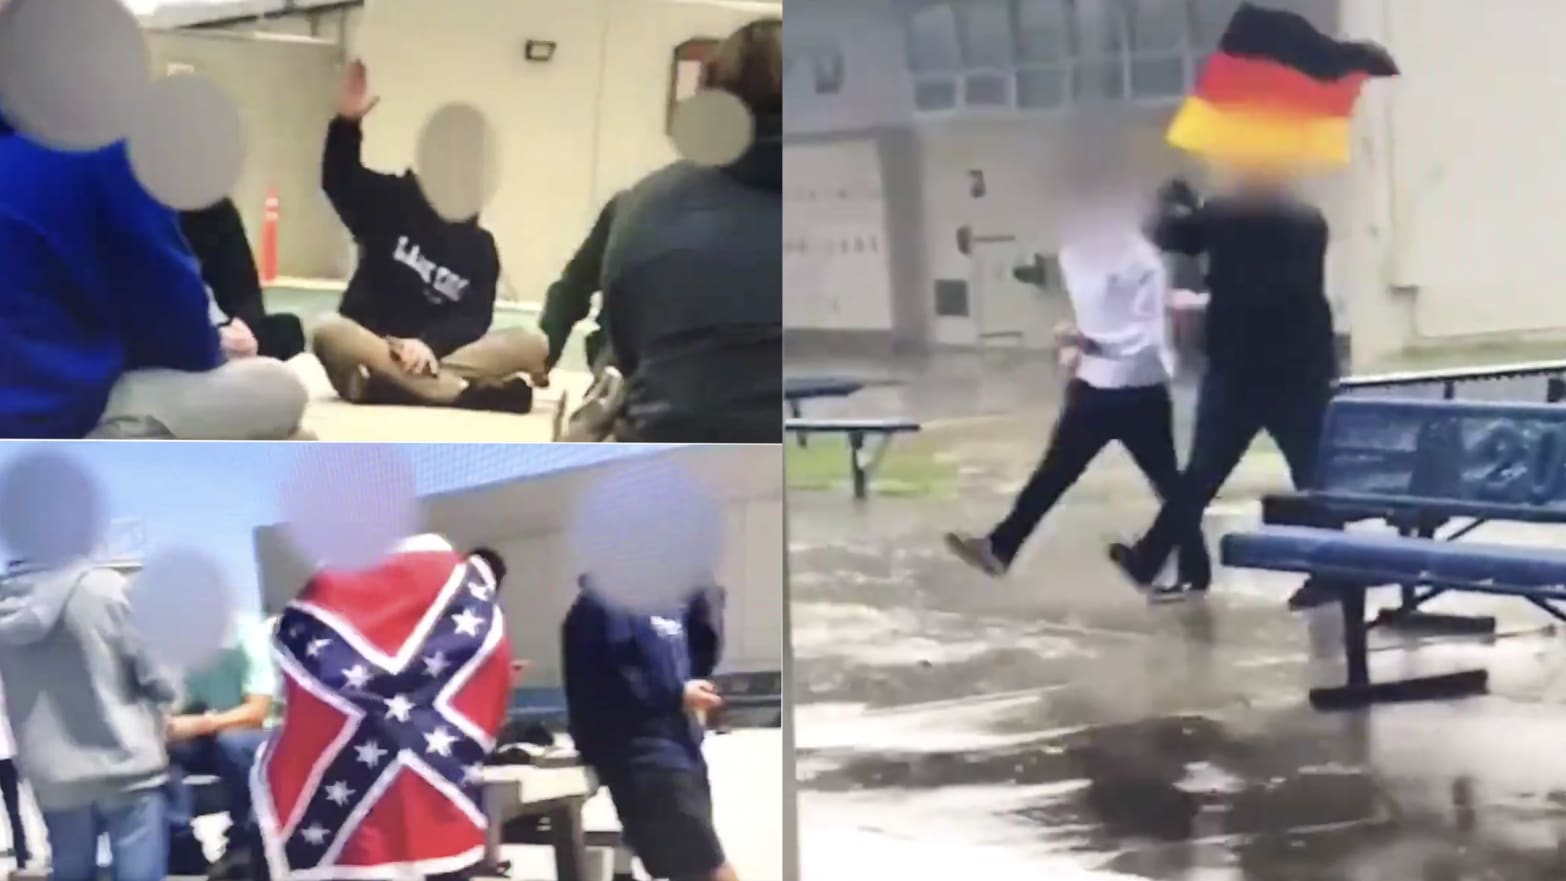 Second Nazi Video Emerges of Pacifica High-School Students in California